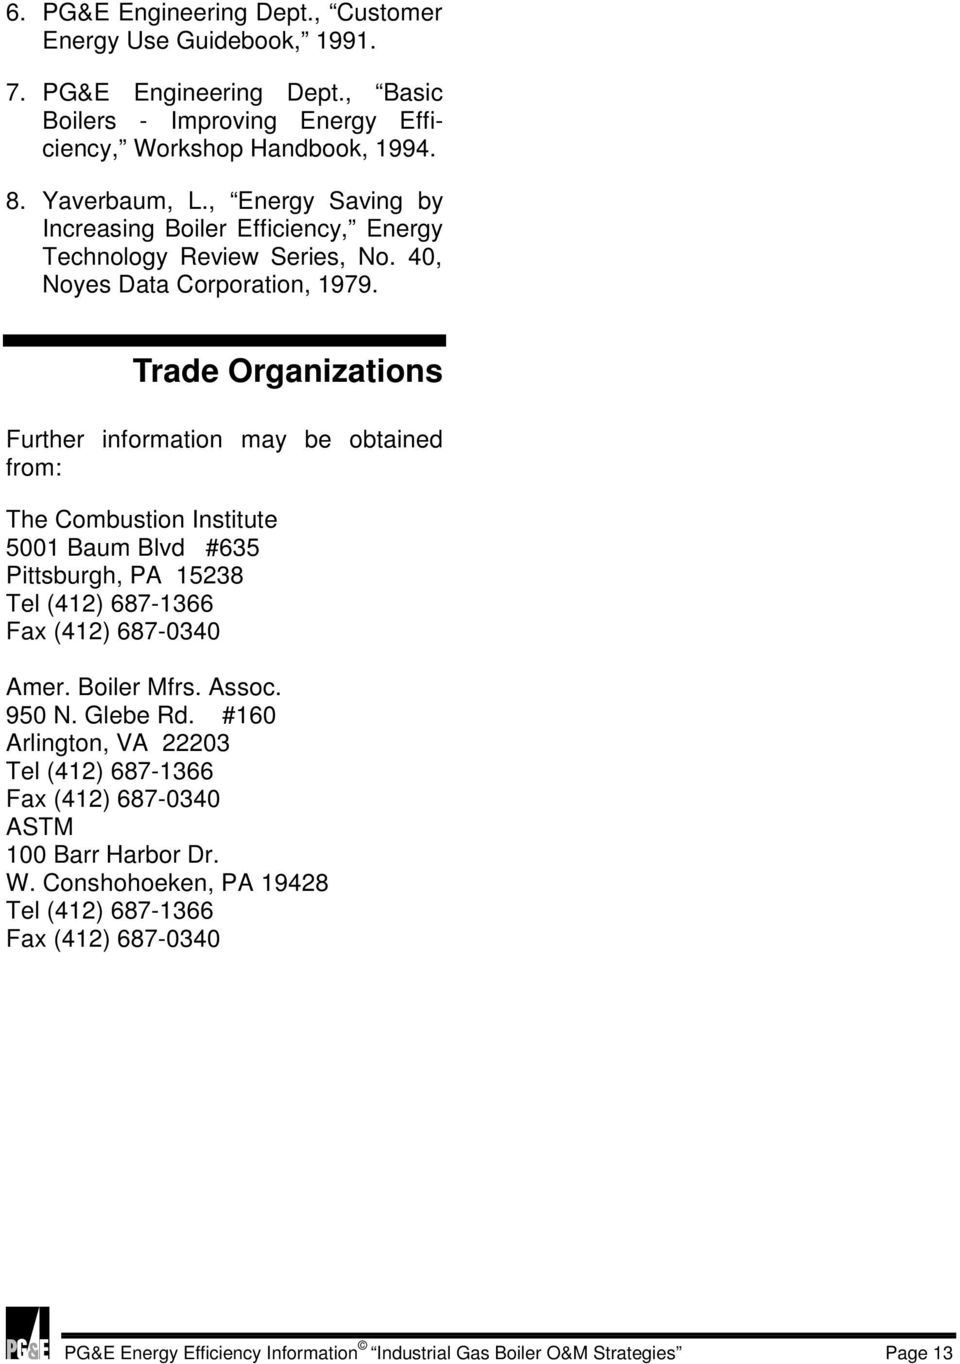 Trade Organizations Further information may be obtained from: The Combustion Institute 5001 Baum Blvd #635 Pittsburgh, PA 15238 Tel (412) 687-1366 Fax (412) 687-0340 Amer. Boiler Mfrs.